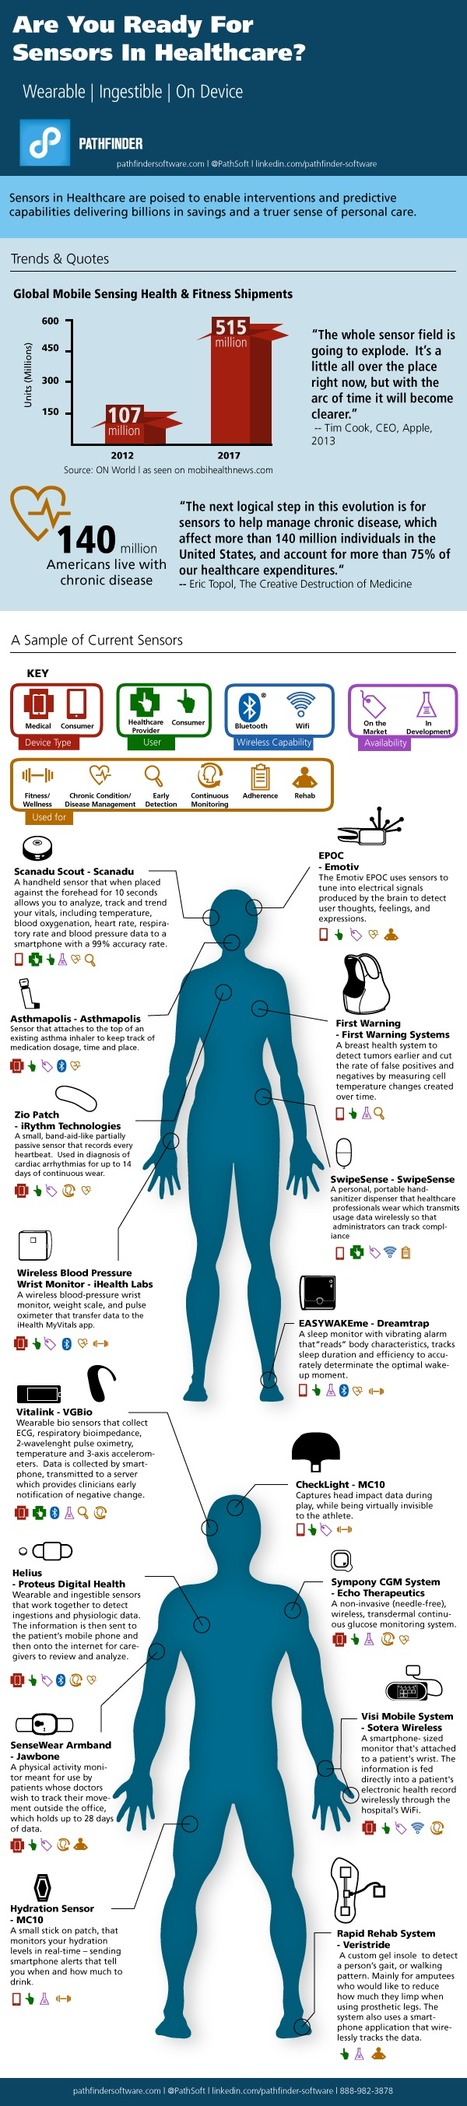 Infographic: The Impact of Sensors in Healthcare on Patient Care | Health care | Scoop.it